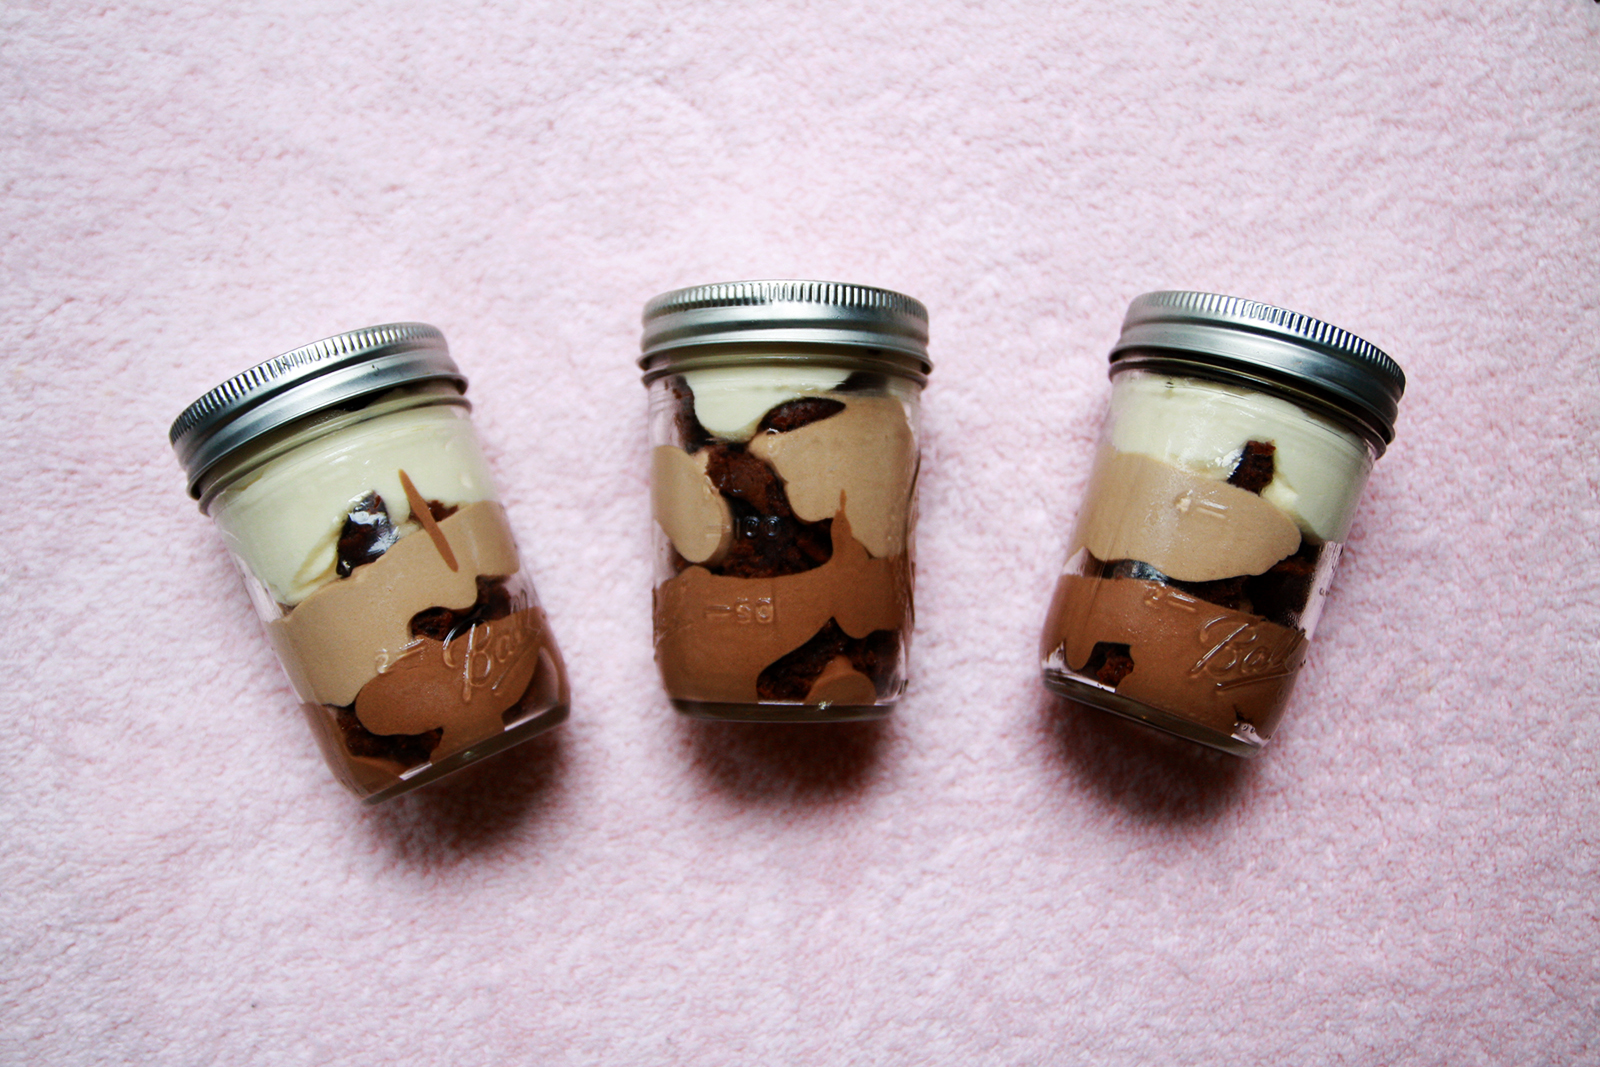 RECIPE: TRIPLE CHOCOLATE MOUSSE CAKES IN JARS